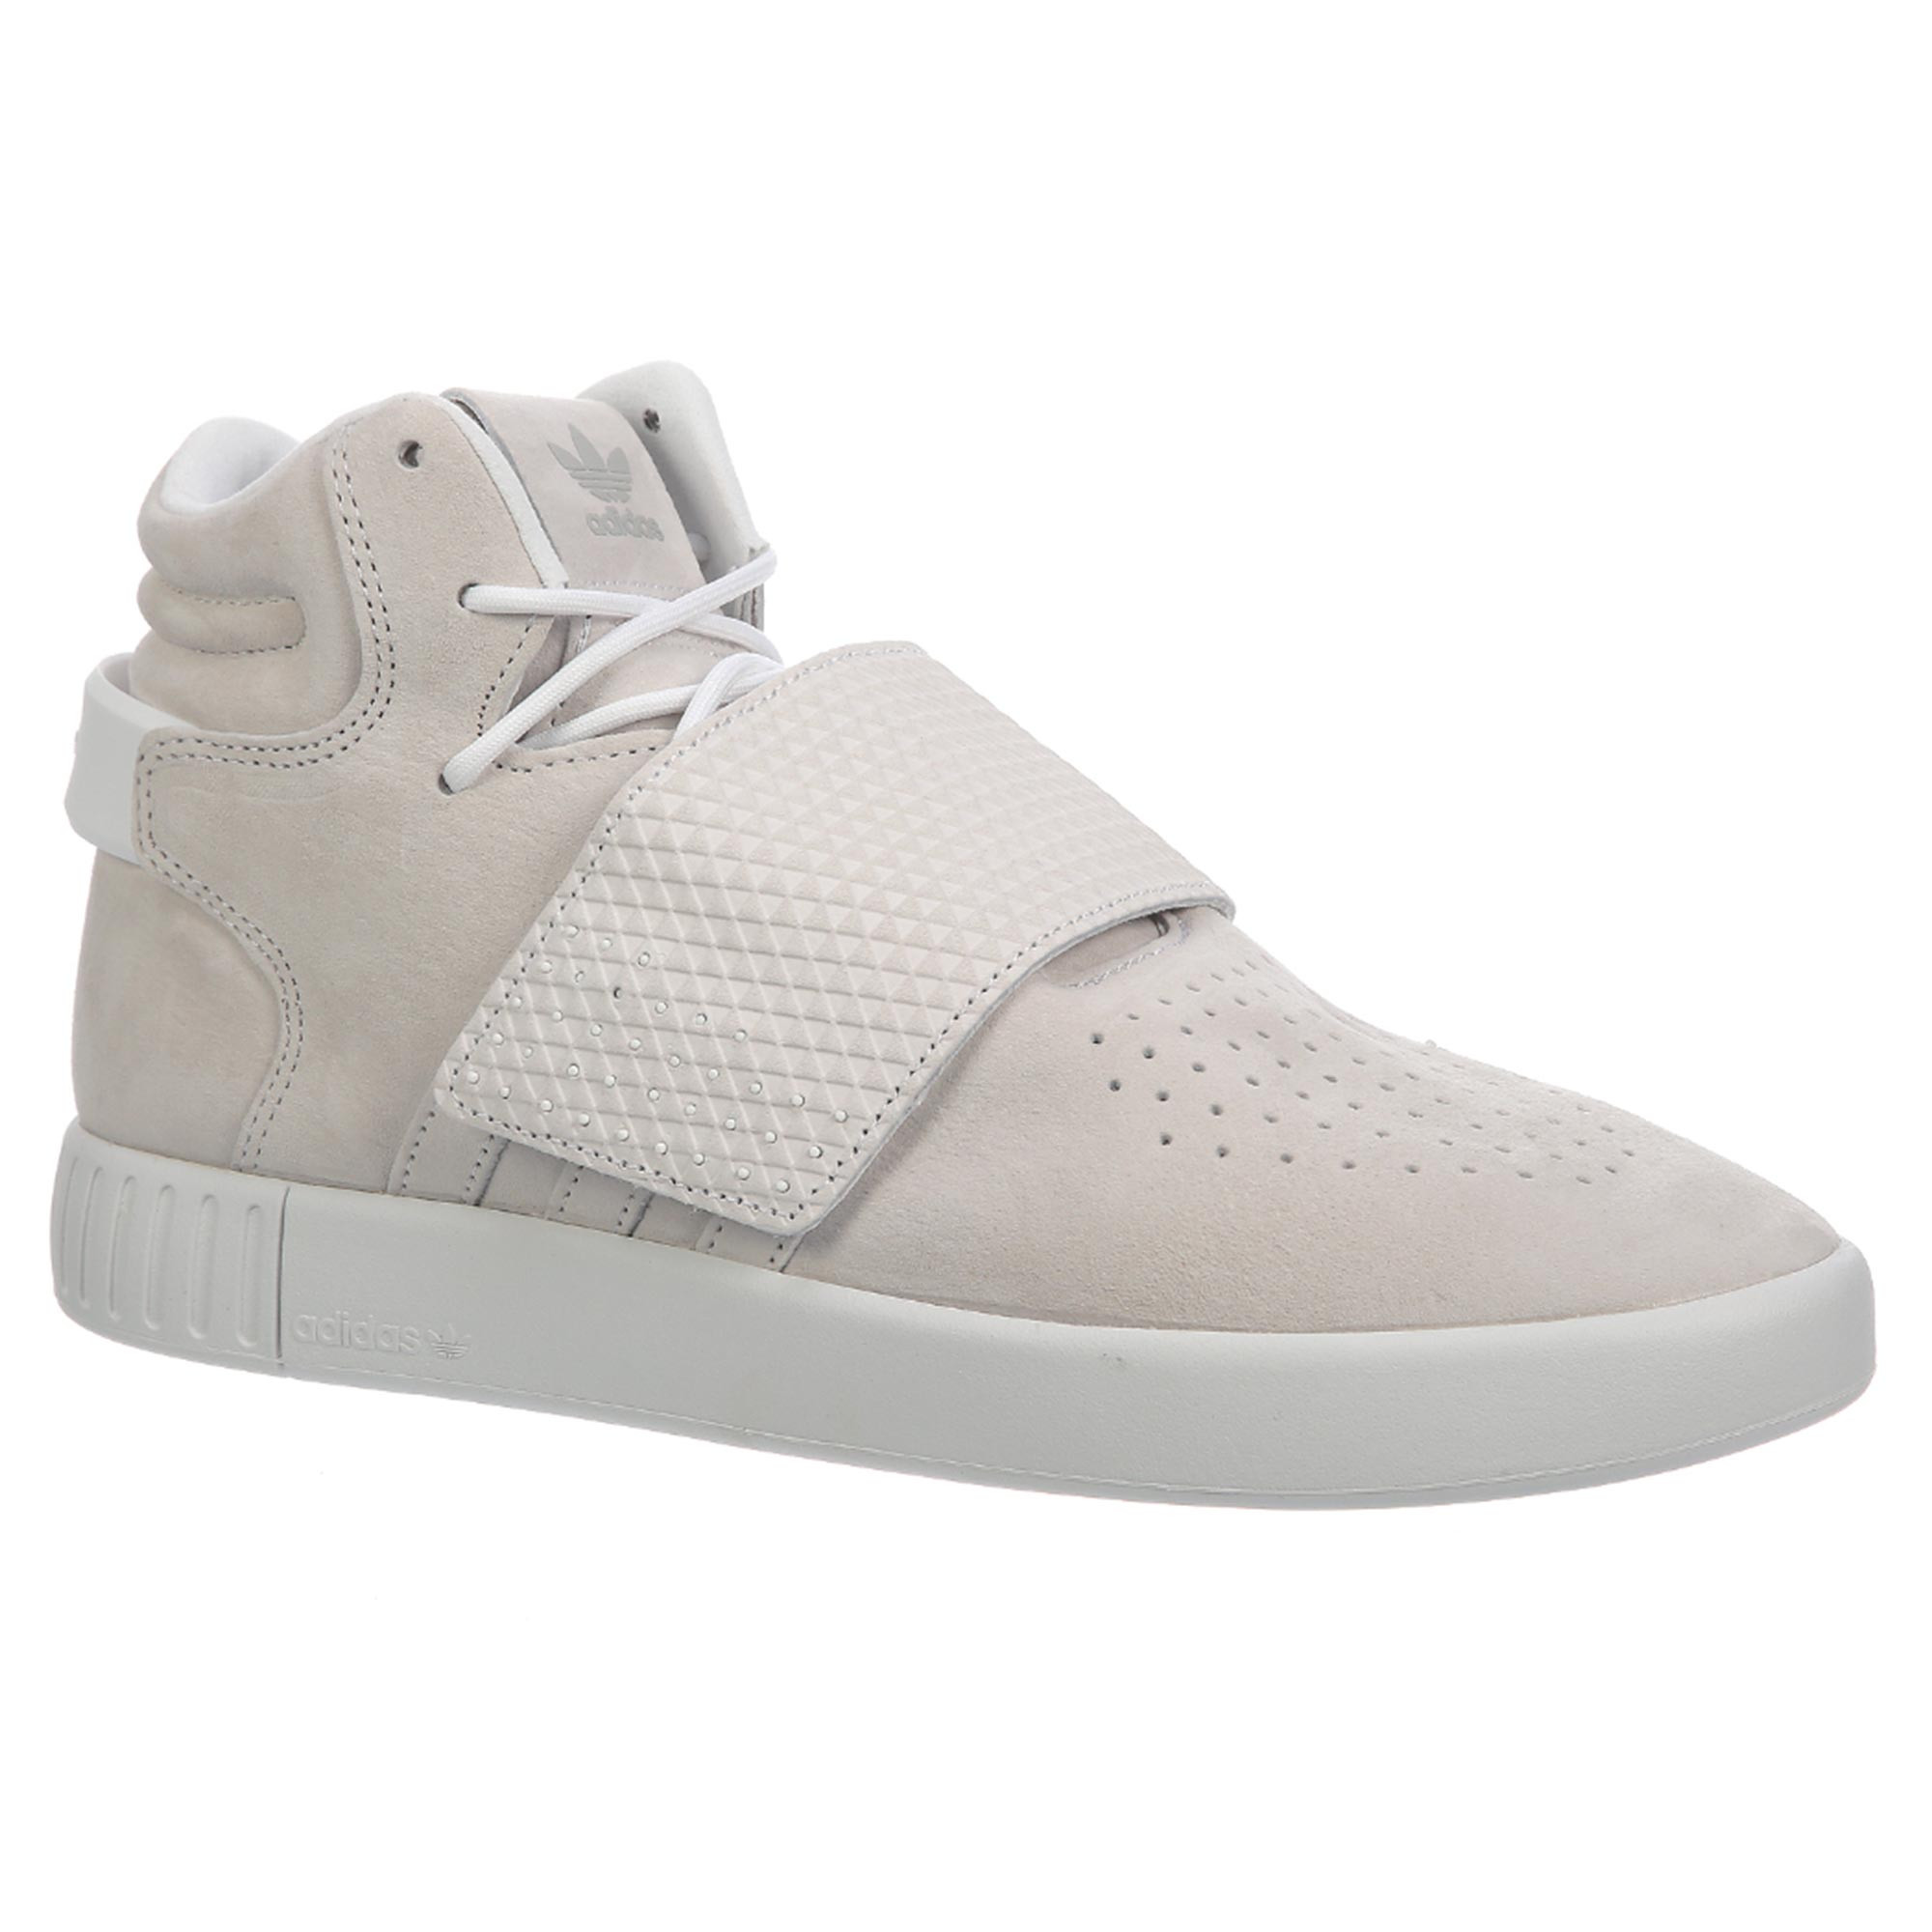 2cd26d7f43 Tubular Invader Strap Chaussure Homme Tubular Invader Strap Chaussure Homme  ...